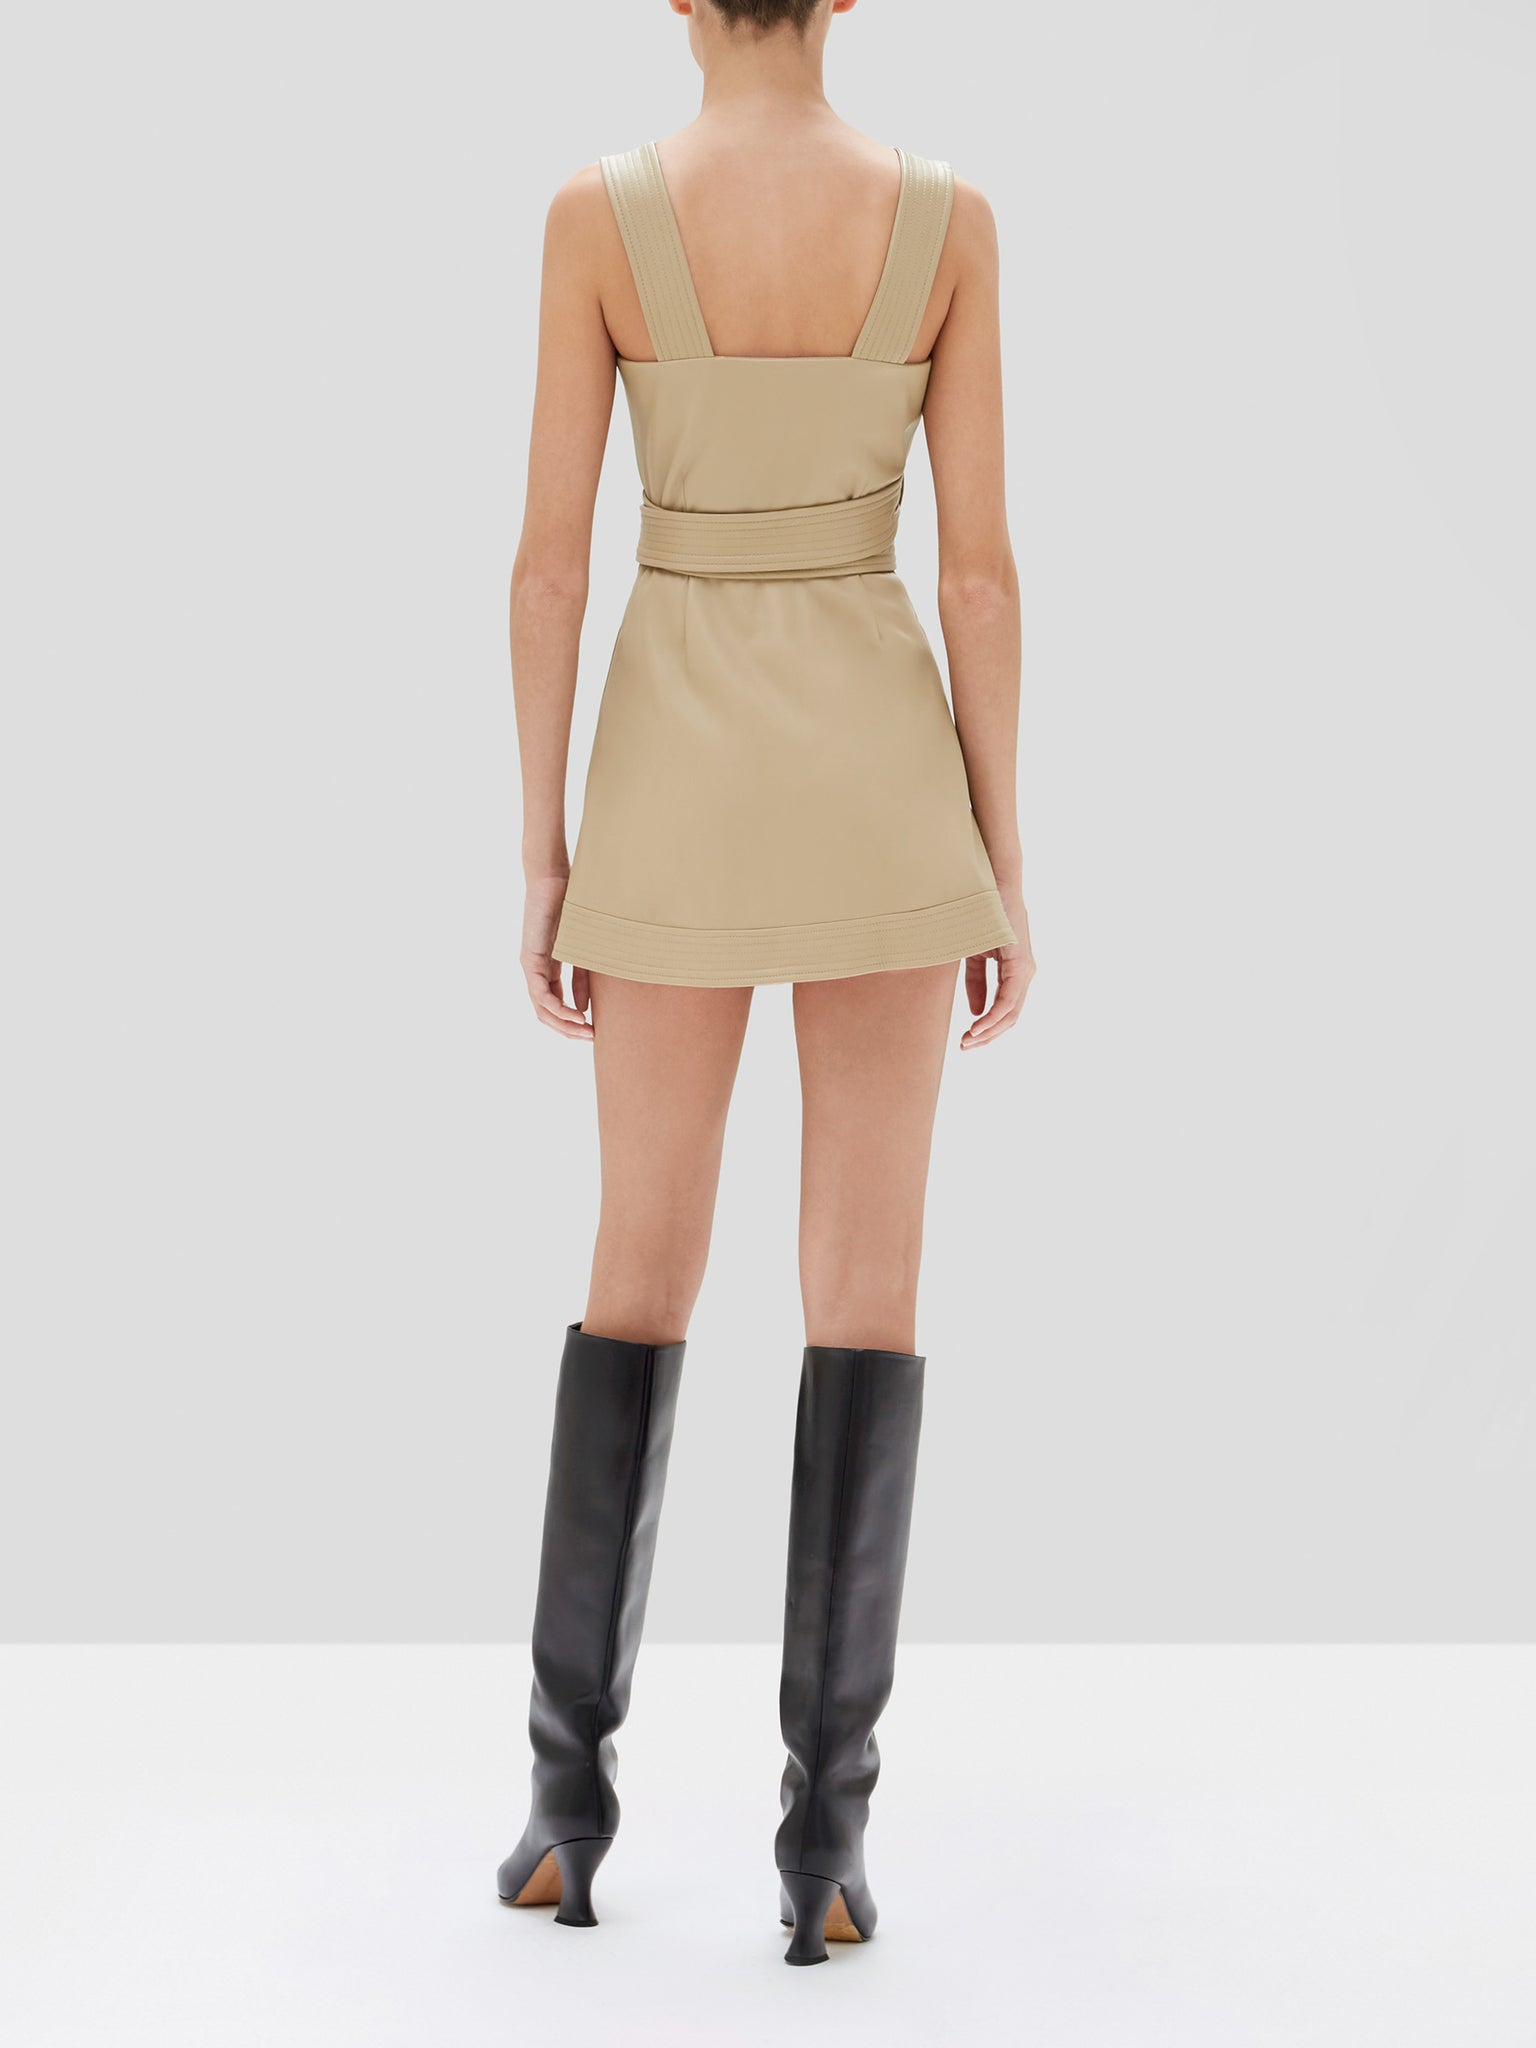 risley romper in taupe - Rear View